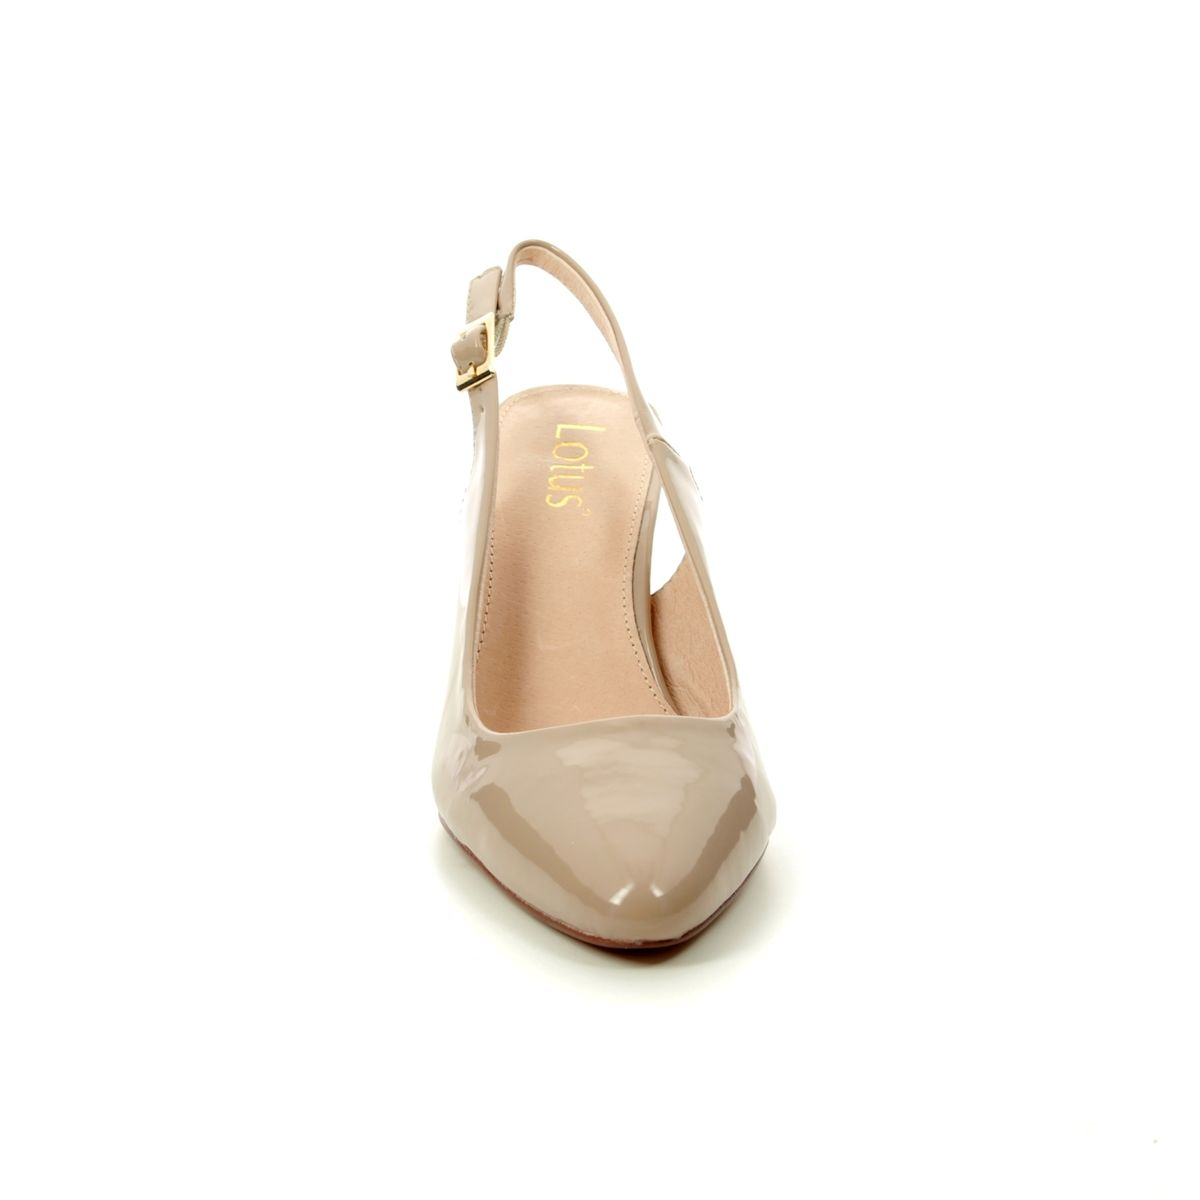 ae9d851629c Lotus Slingback Shoes - Nude Patent - ULS056/56 LIZZIE